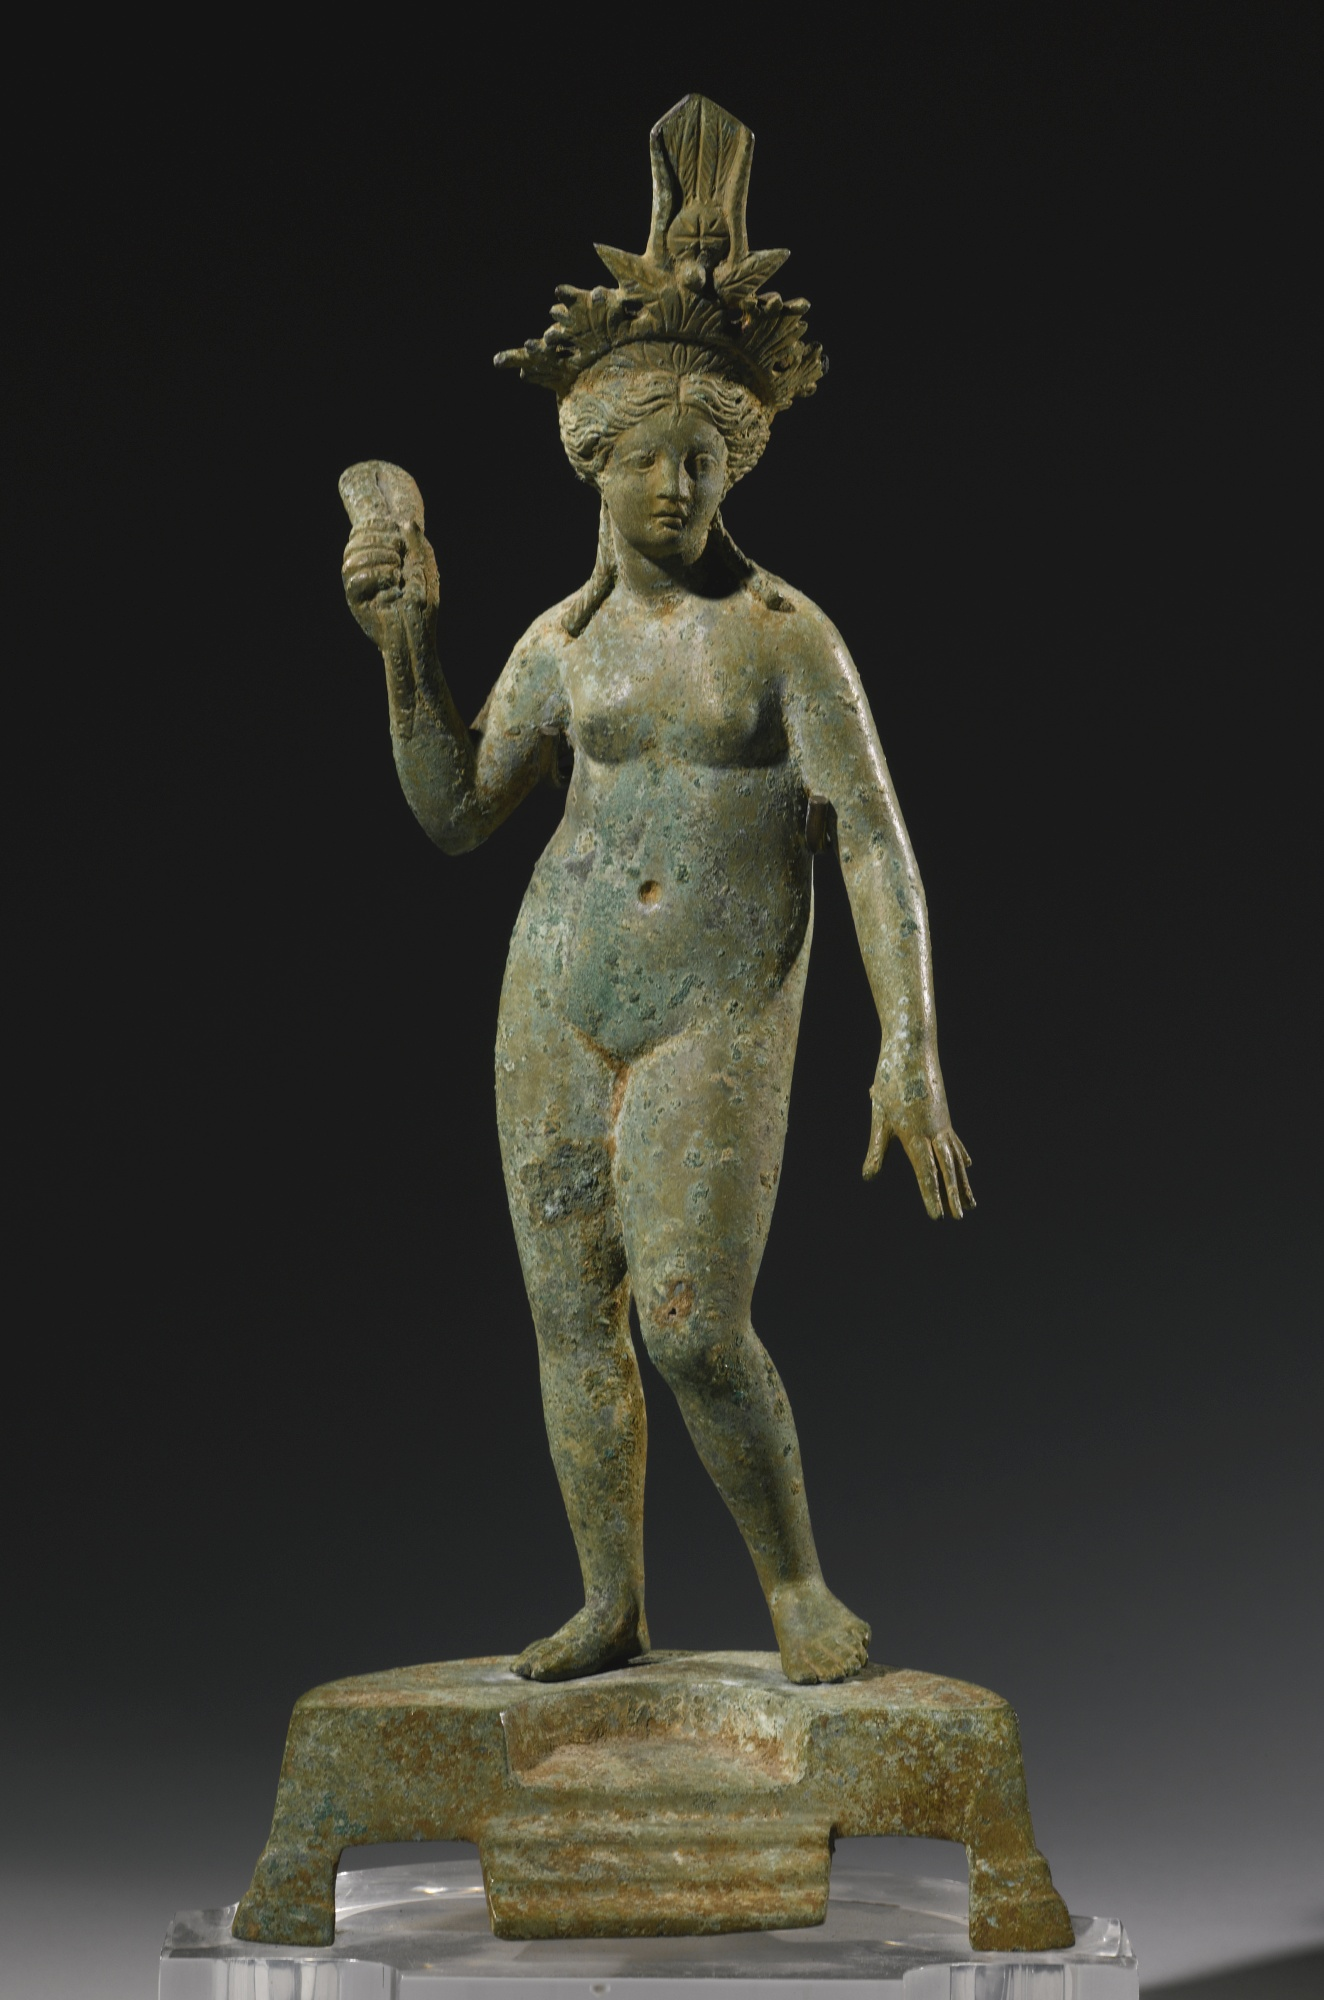 Inanna depicted many ways, 8-pointed star of Venus on her headdress